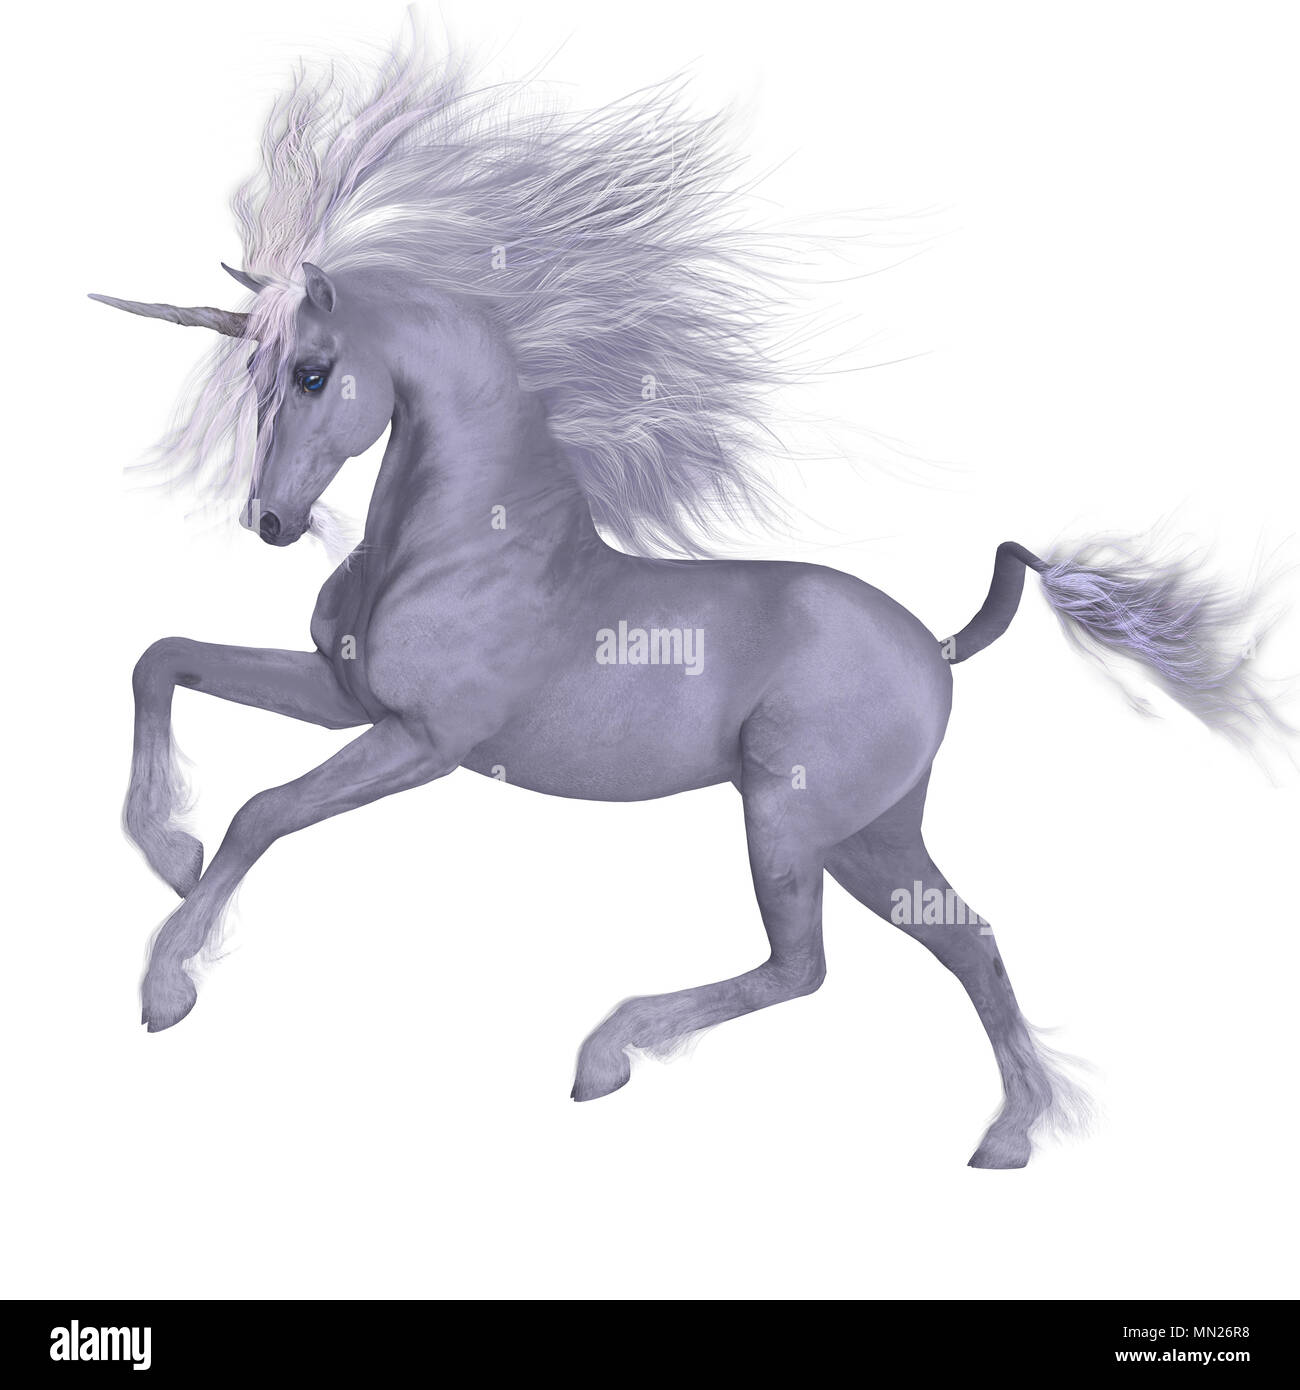 White Unicorn Prancing - A Unicorn is a mythical creature that has a white coat, cloven hooves, goat beard and forehead horn. - Stock Image